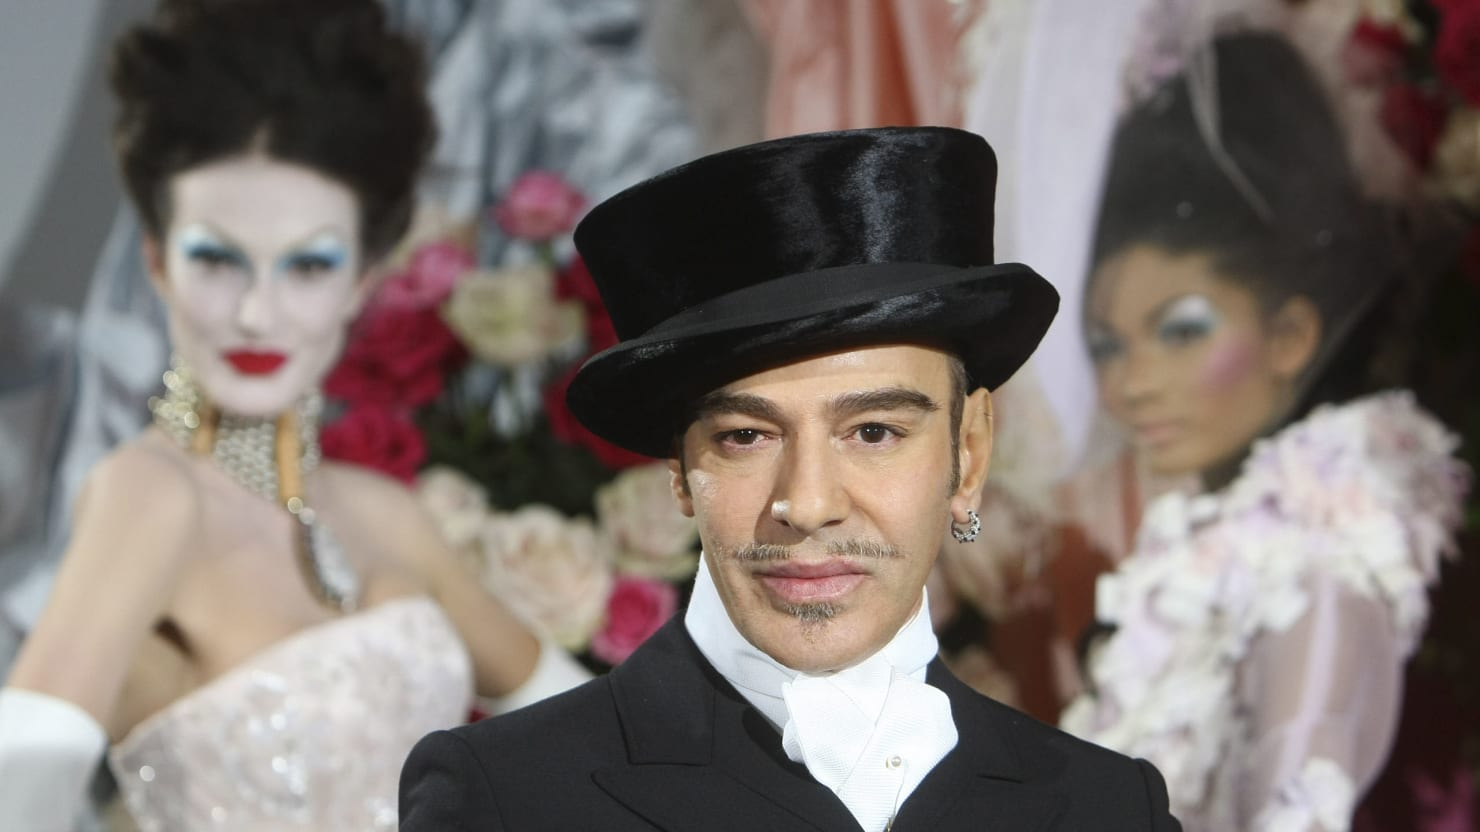 British Vogue Taps John Galliano as Guest Fashion Editor; Christopher Bailey Wins WGSN's Hall of Fame Award